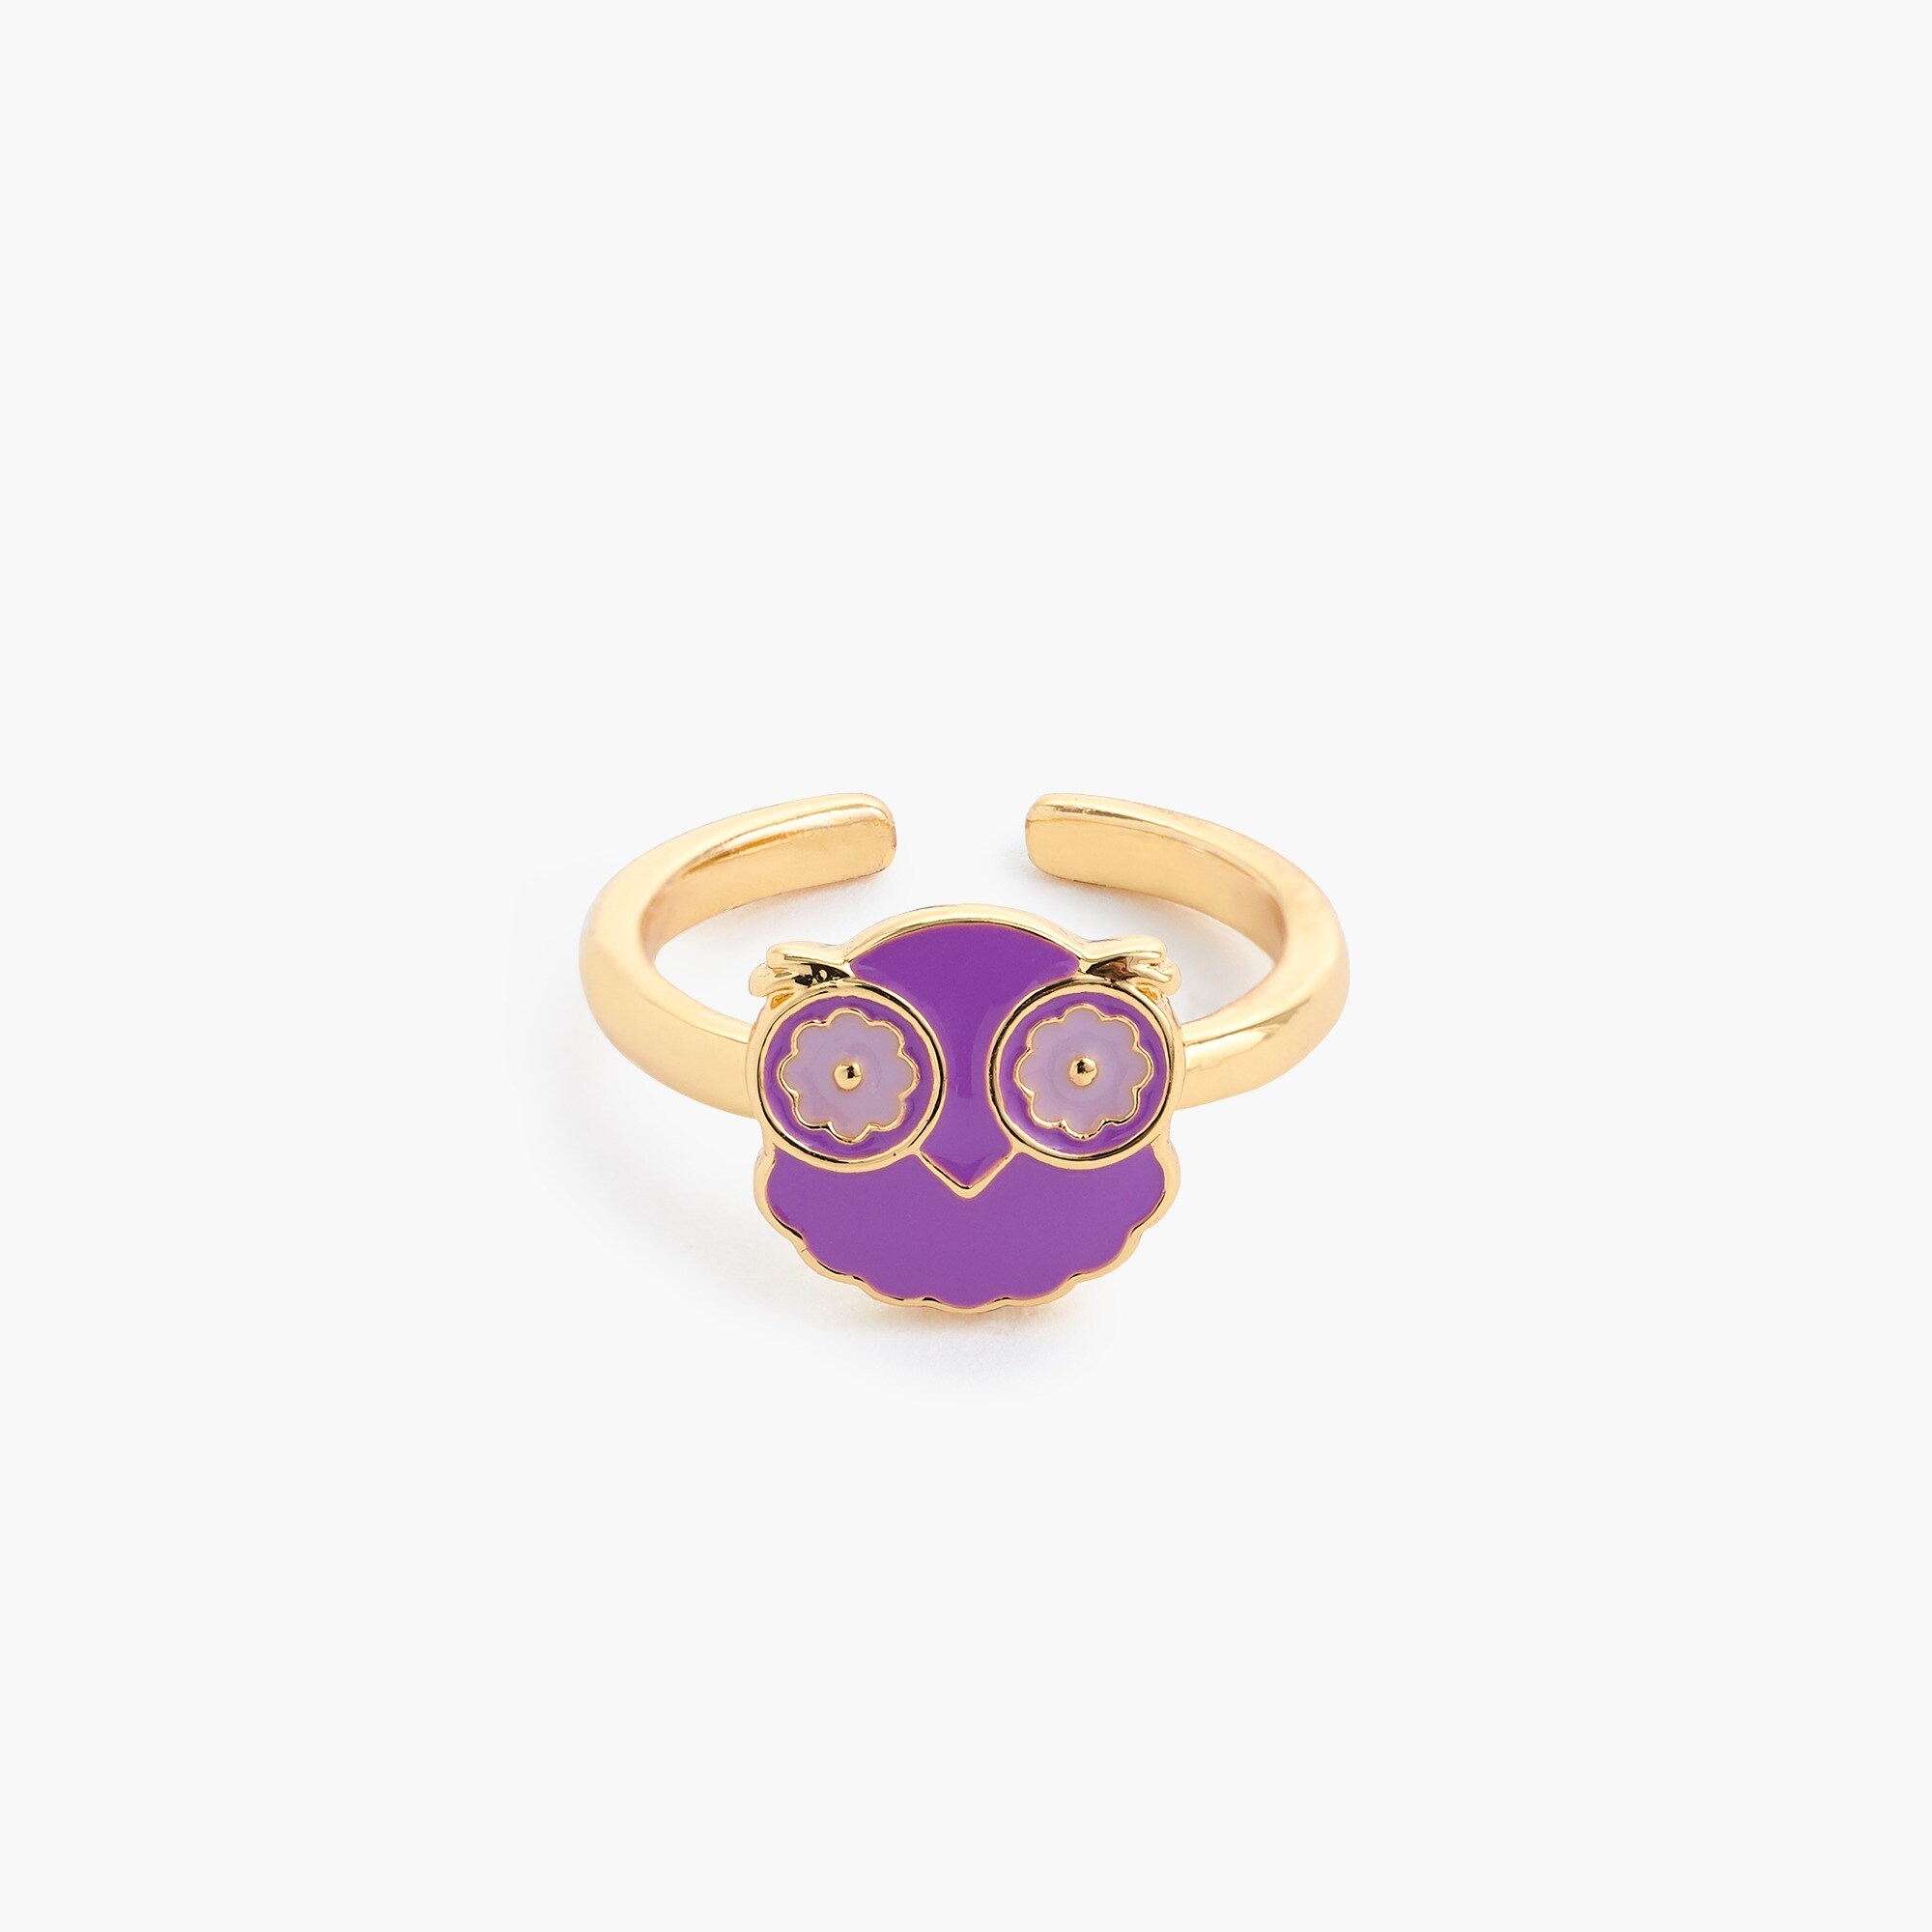 Girls' enamel adjustable rings